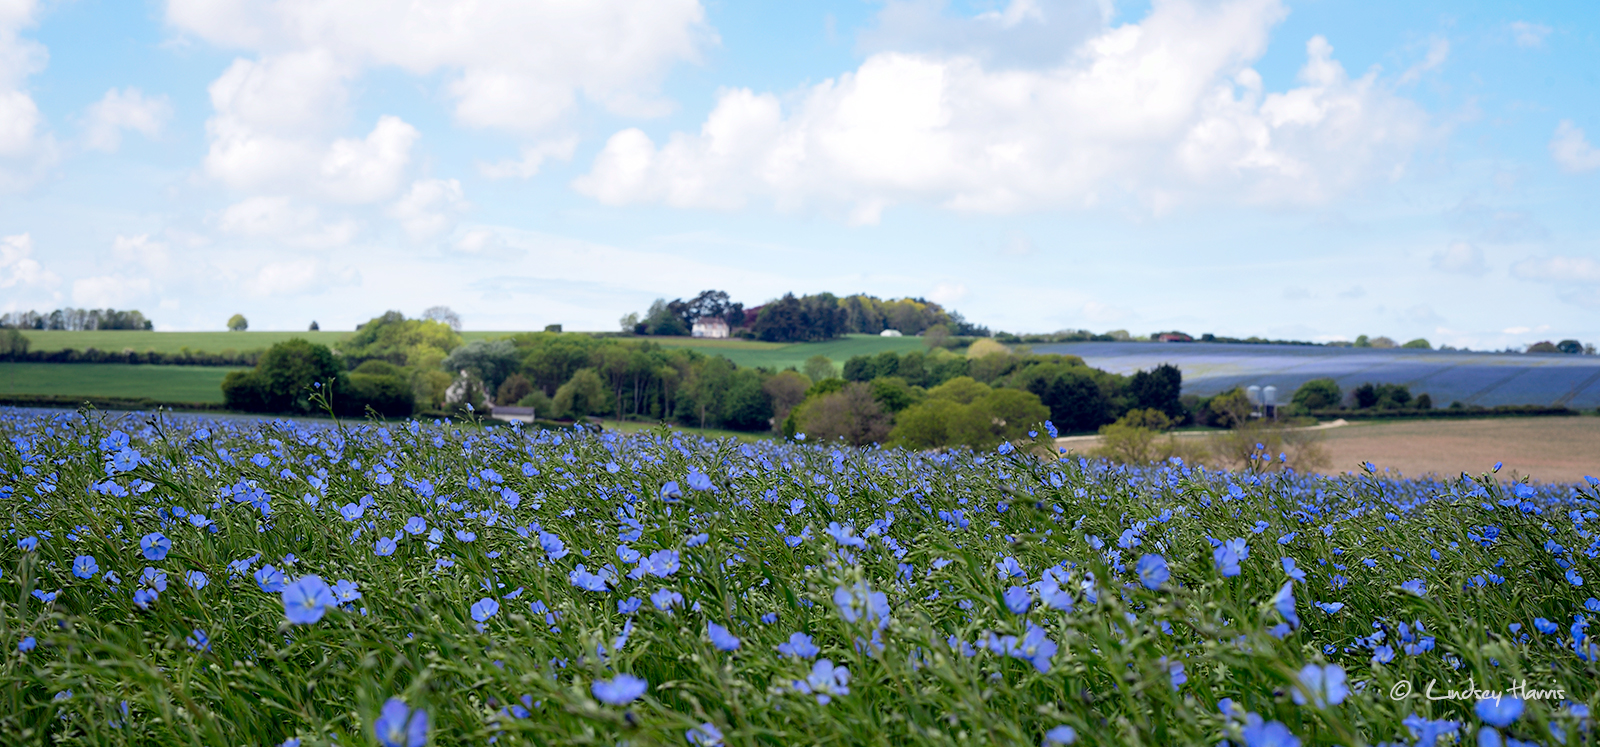 Fields of flax (linseed), Dorset 2017.